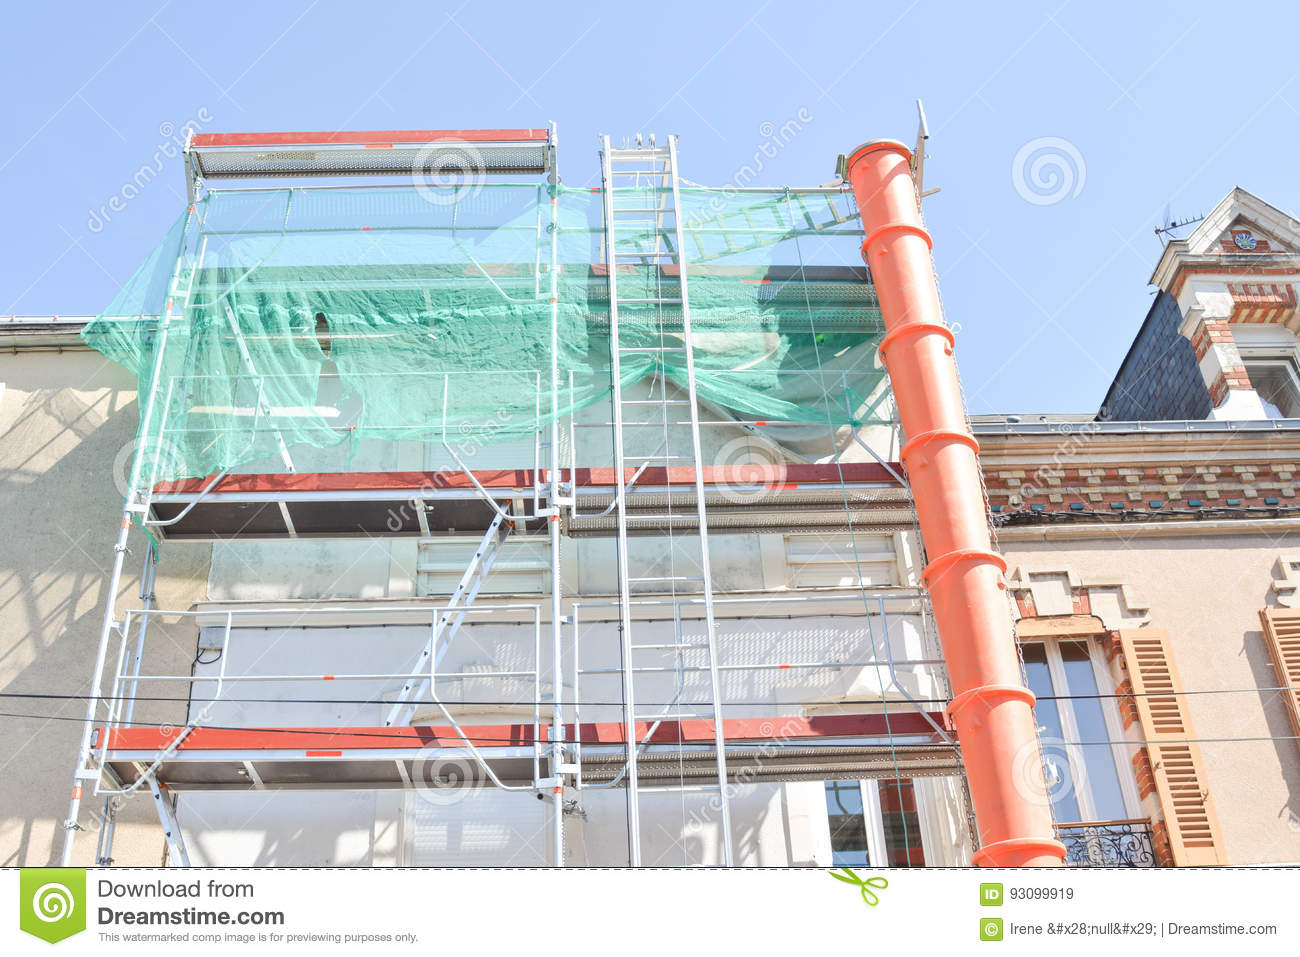 Construction scaffolding of a building Renovation.